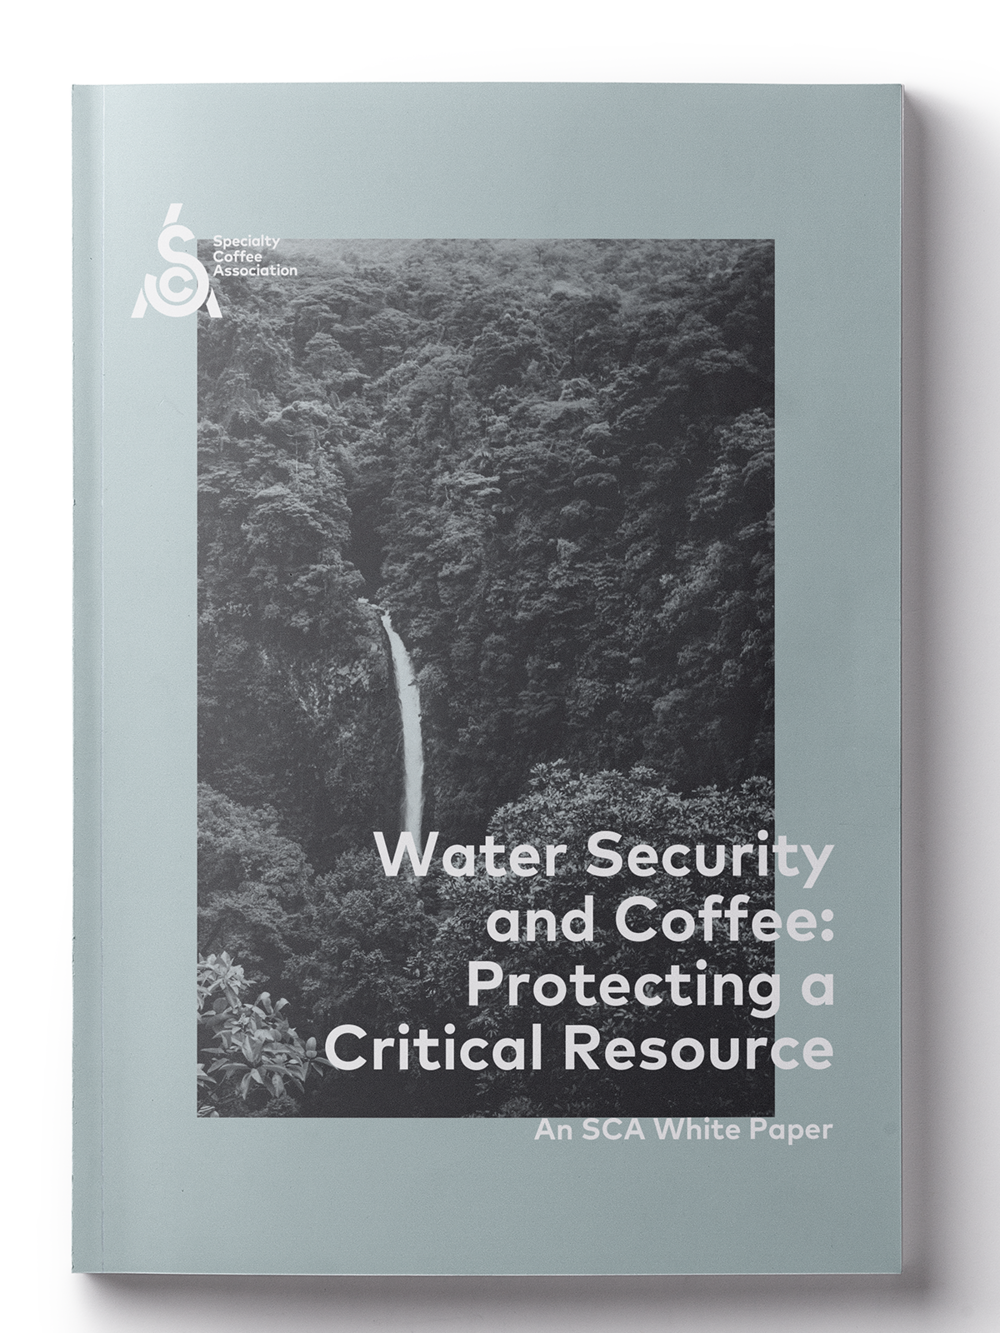 Water Security and Coffee: Protecting a Critical Resource - White Paper  This paper frames the global water crisis, defines key terms related to water resources at origin, explores the connections between coffee production, processing and water stewardship, highlights ongoing efforts by industry leaders for responsible water stewardship, and provides recommendations for action and further research.   Download